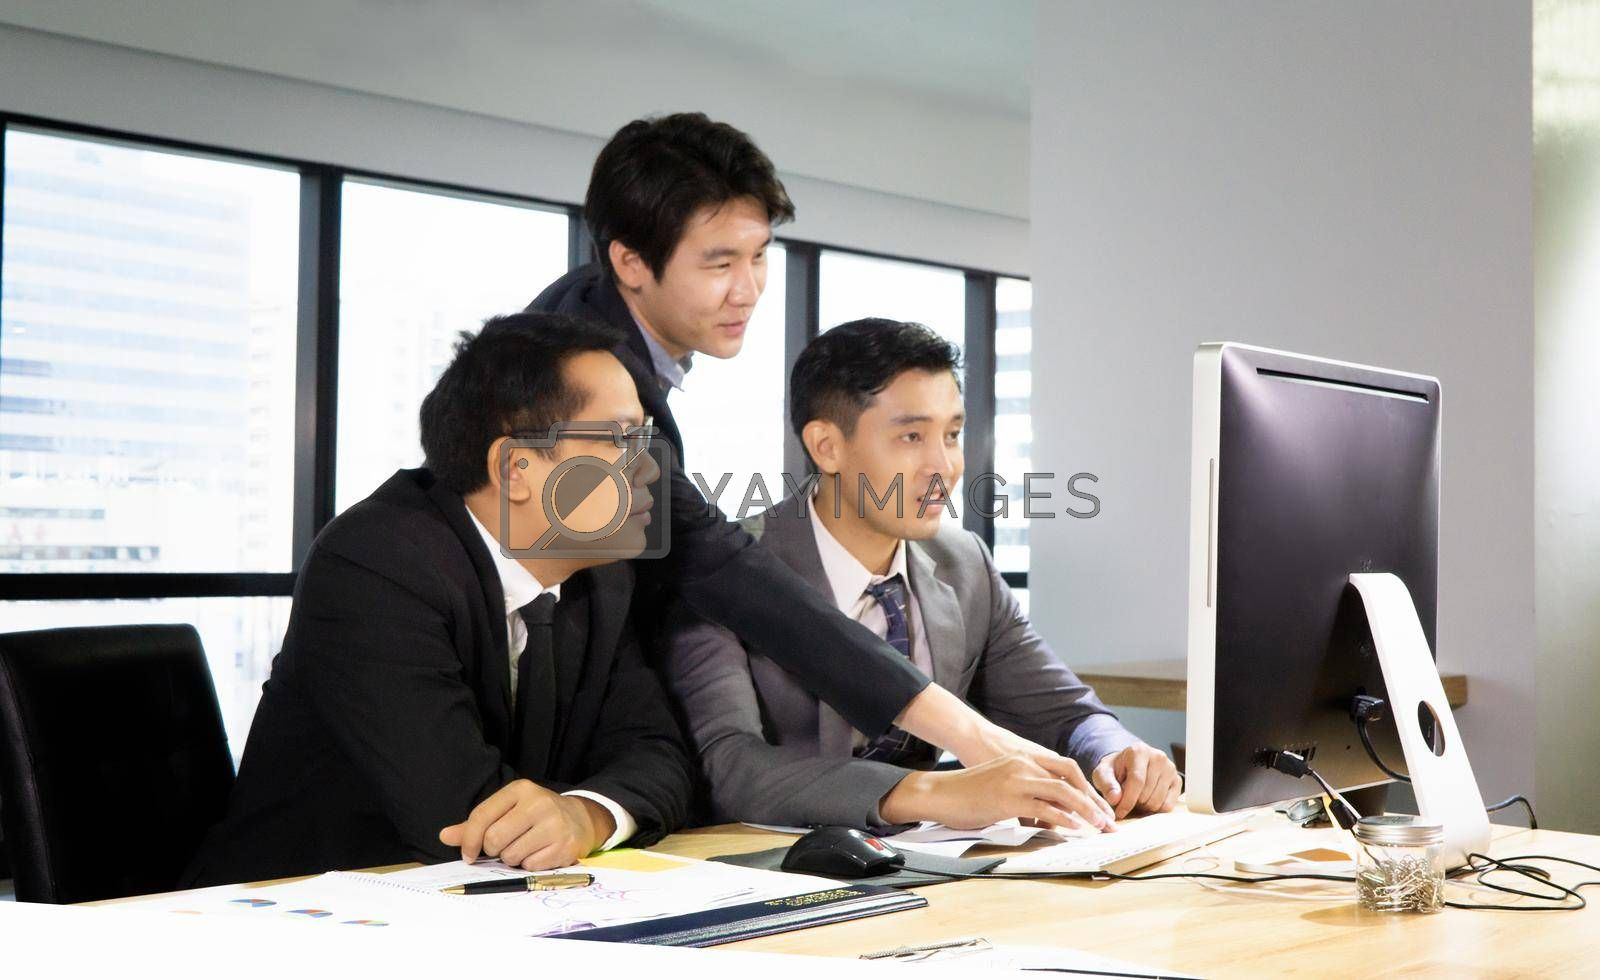 business people working on project at Modern Startup Office. Business People Meeting Discussion Working Concept, business people are meeting to analyze data for marketing plan